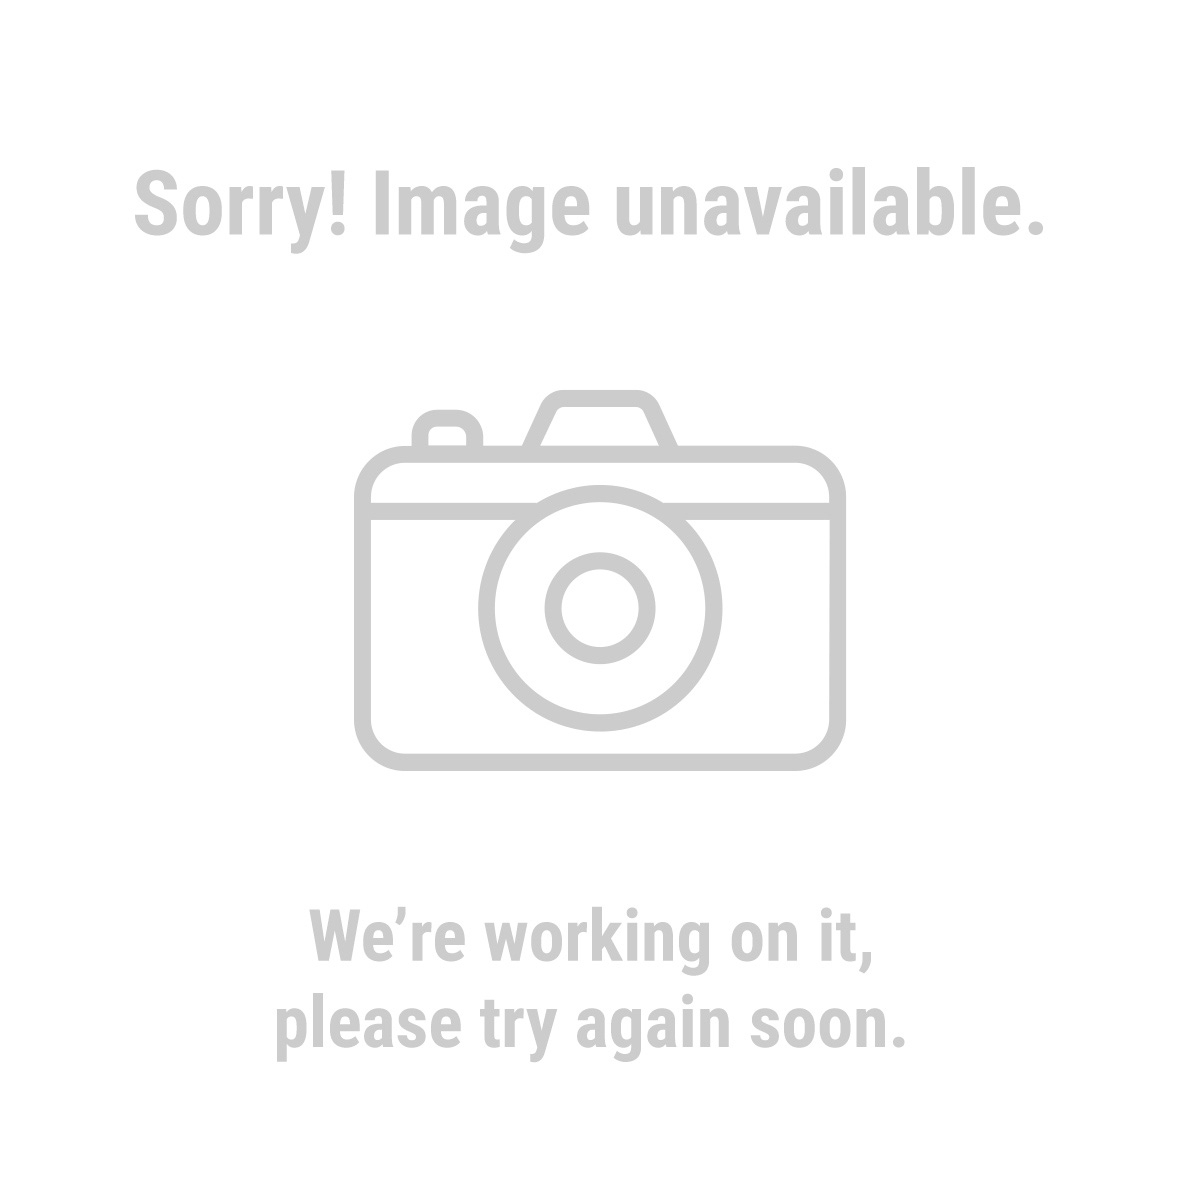 U.S. General 46725 Adjustable Height Heavy Duty Workstation